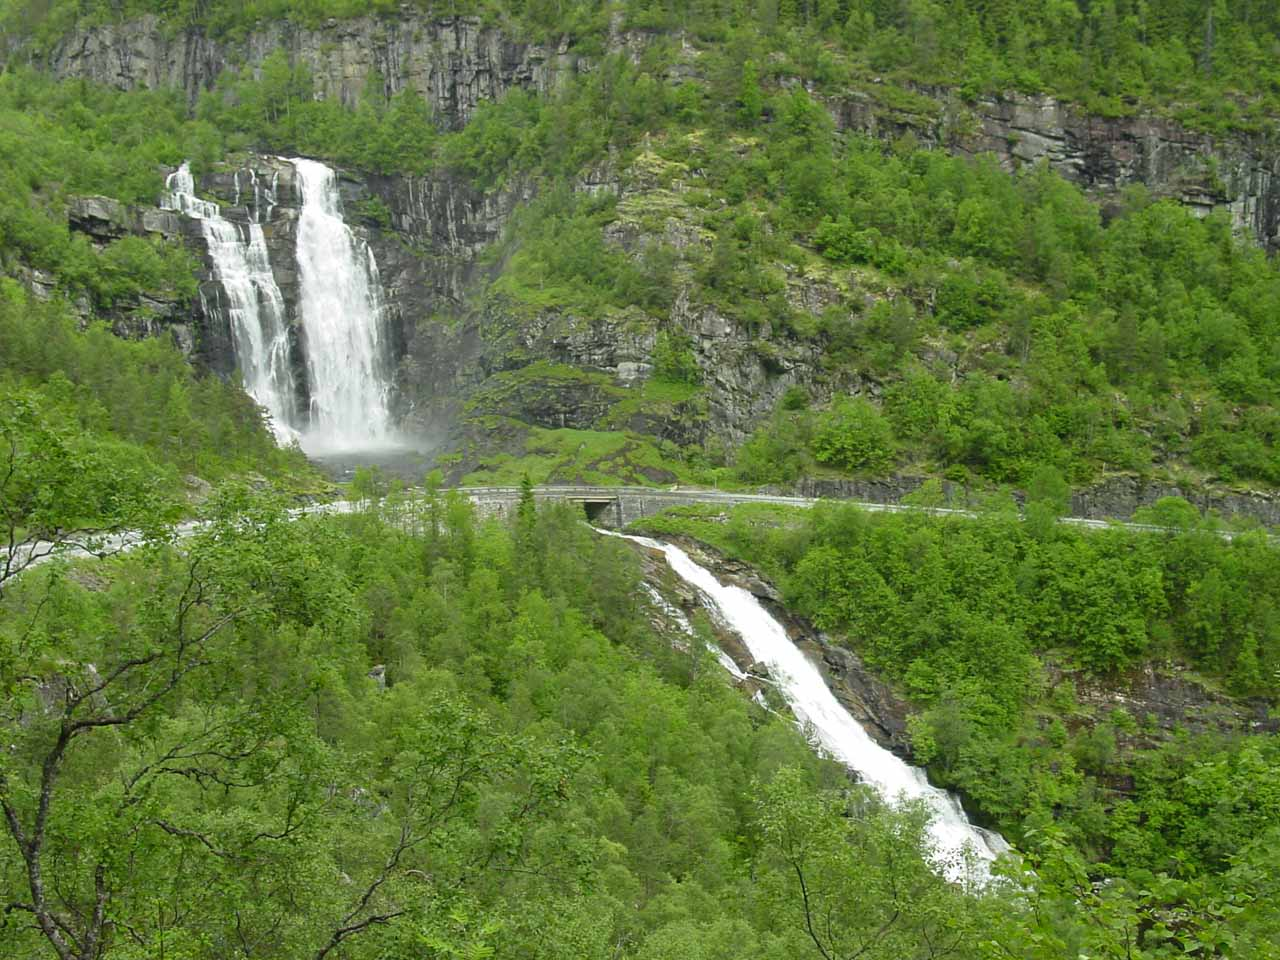 A closer look at the entirety of the impressive Skjervsfossen as seen from higher up the switchbacks of Rv13 at Skjervet